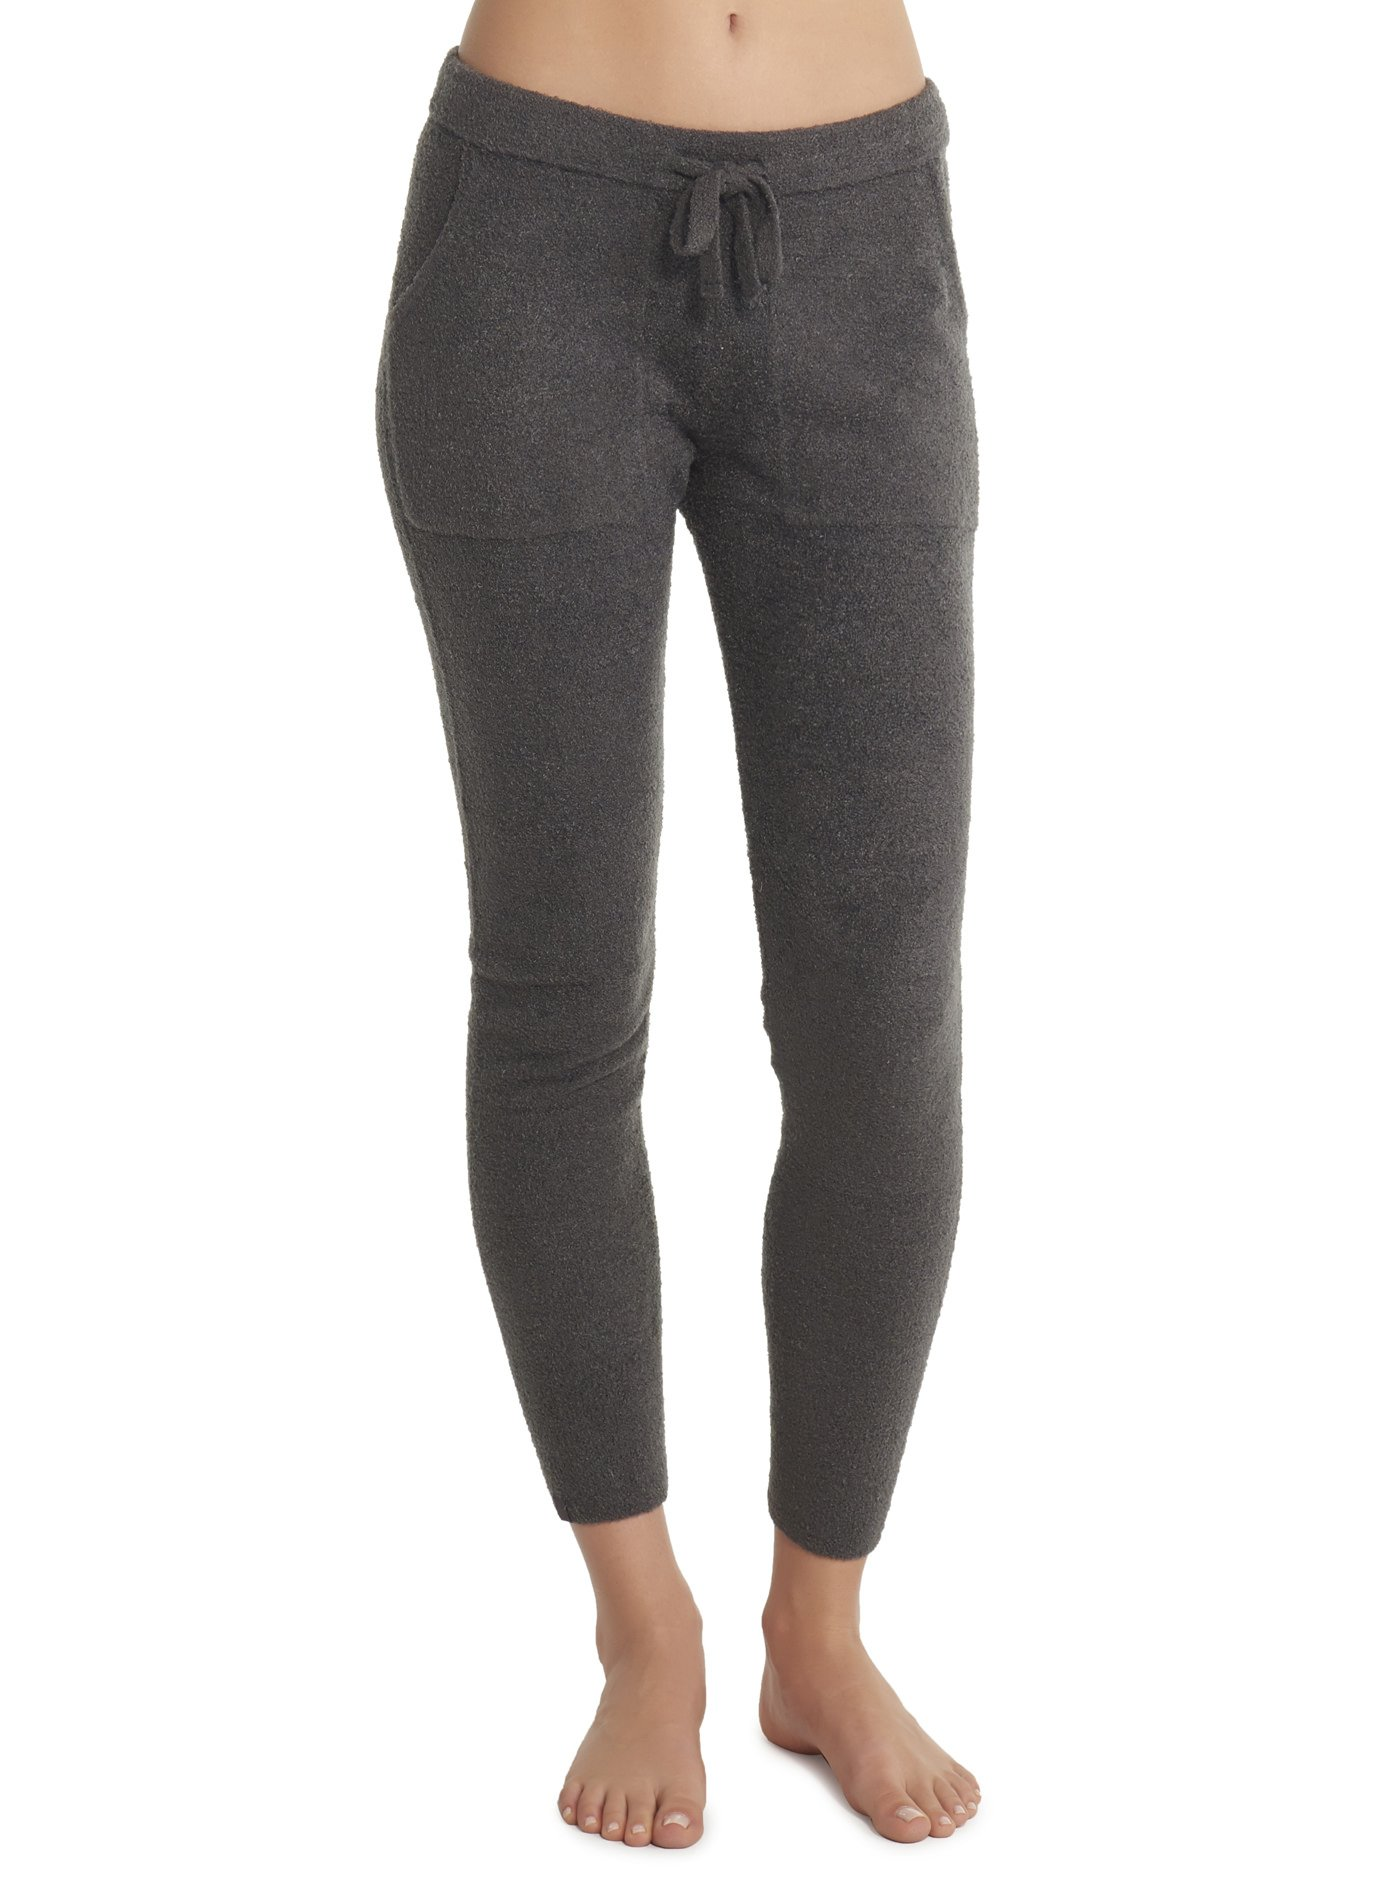 Barefoot Dreams CozyChic Lite Joggers Pants For Women - Carbon – Medium by Barefoot Dreams